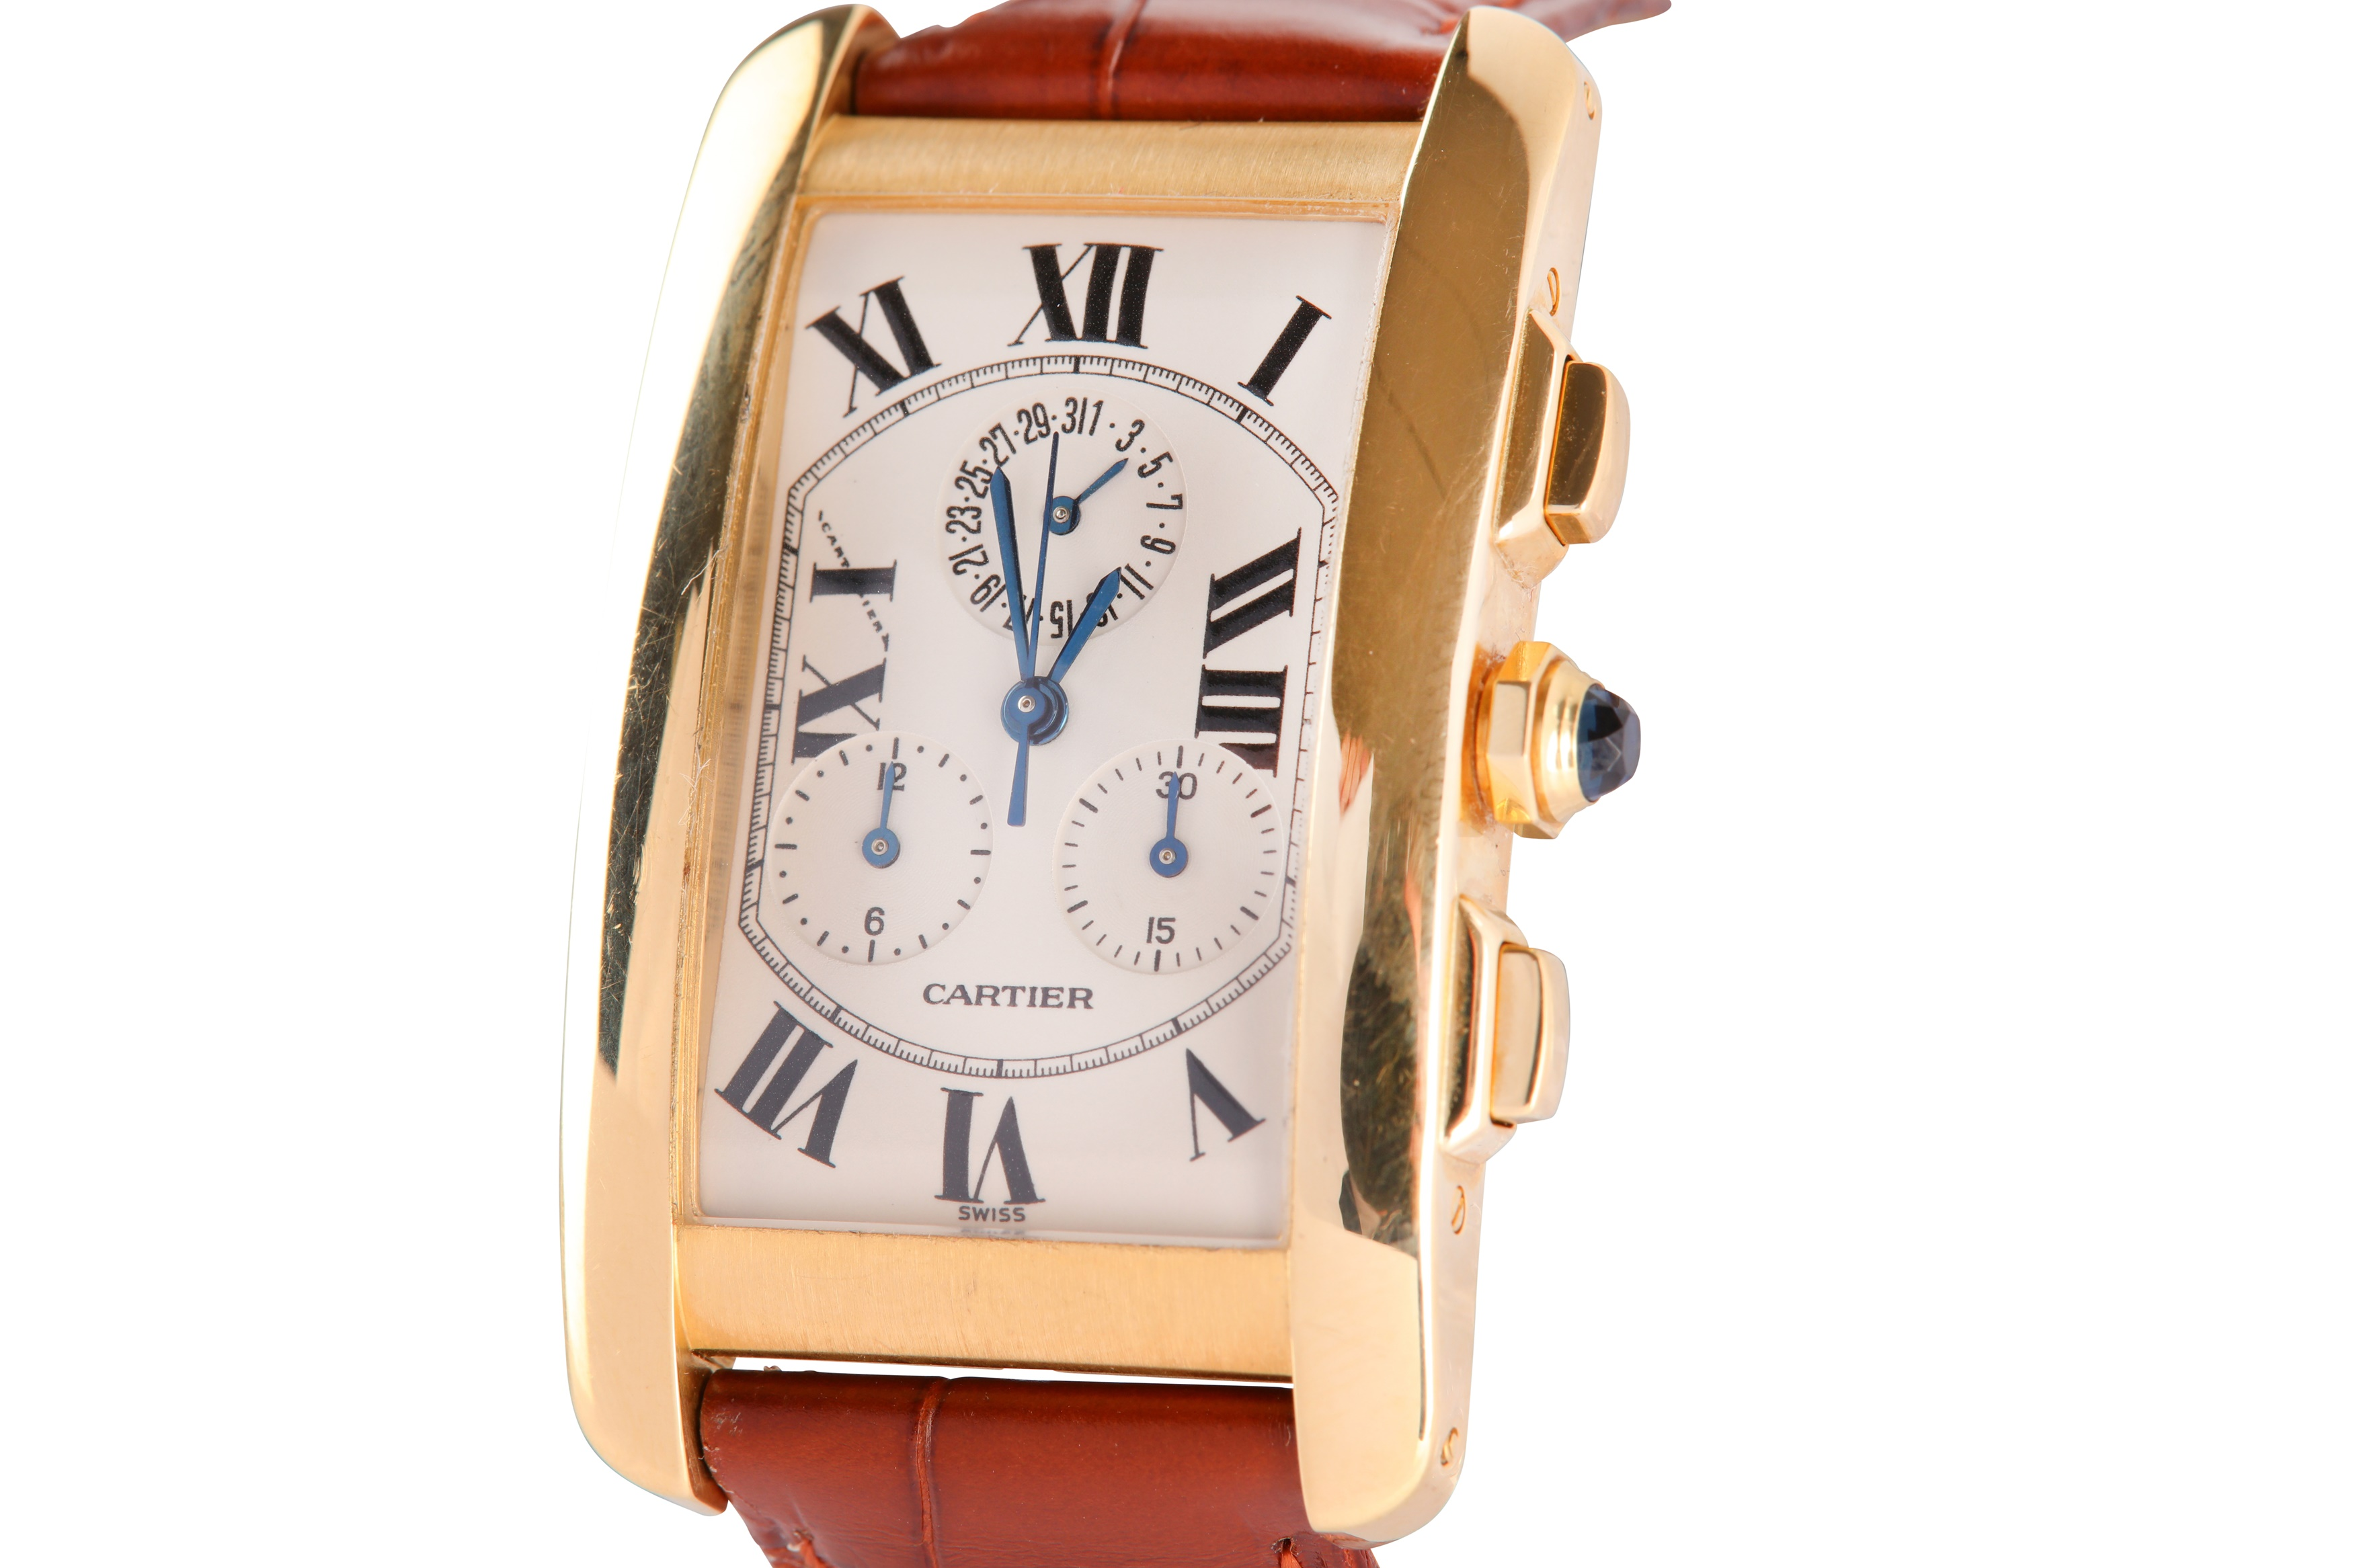 CARTIER. - Image 2 of 6